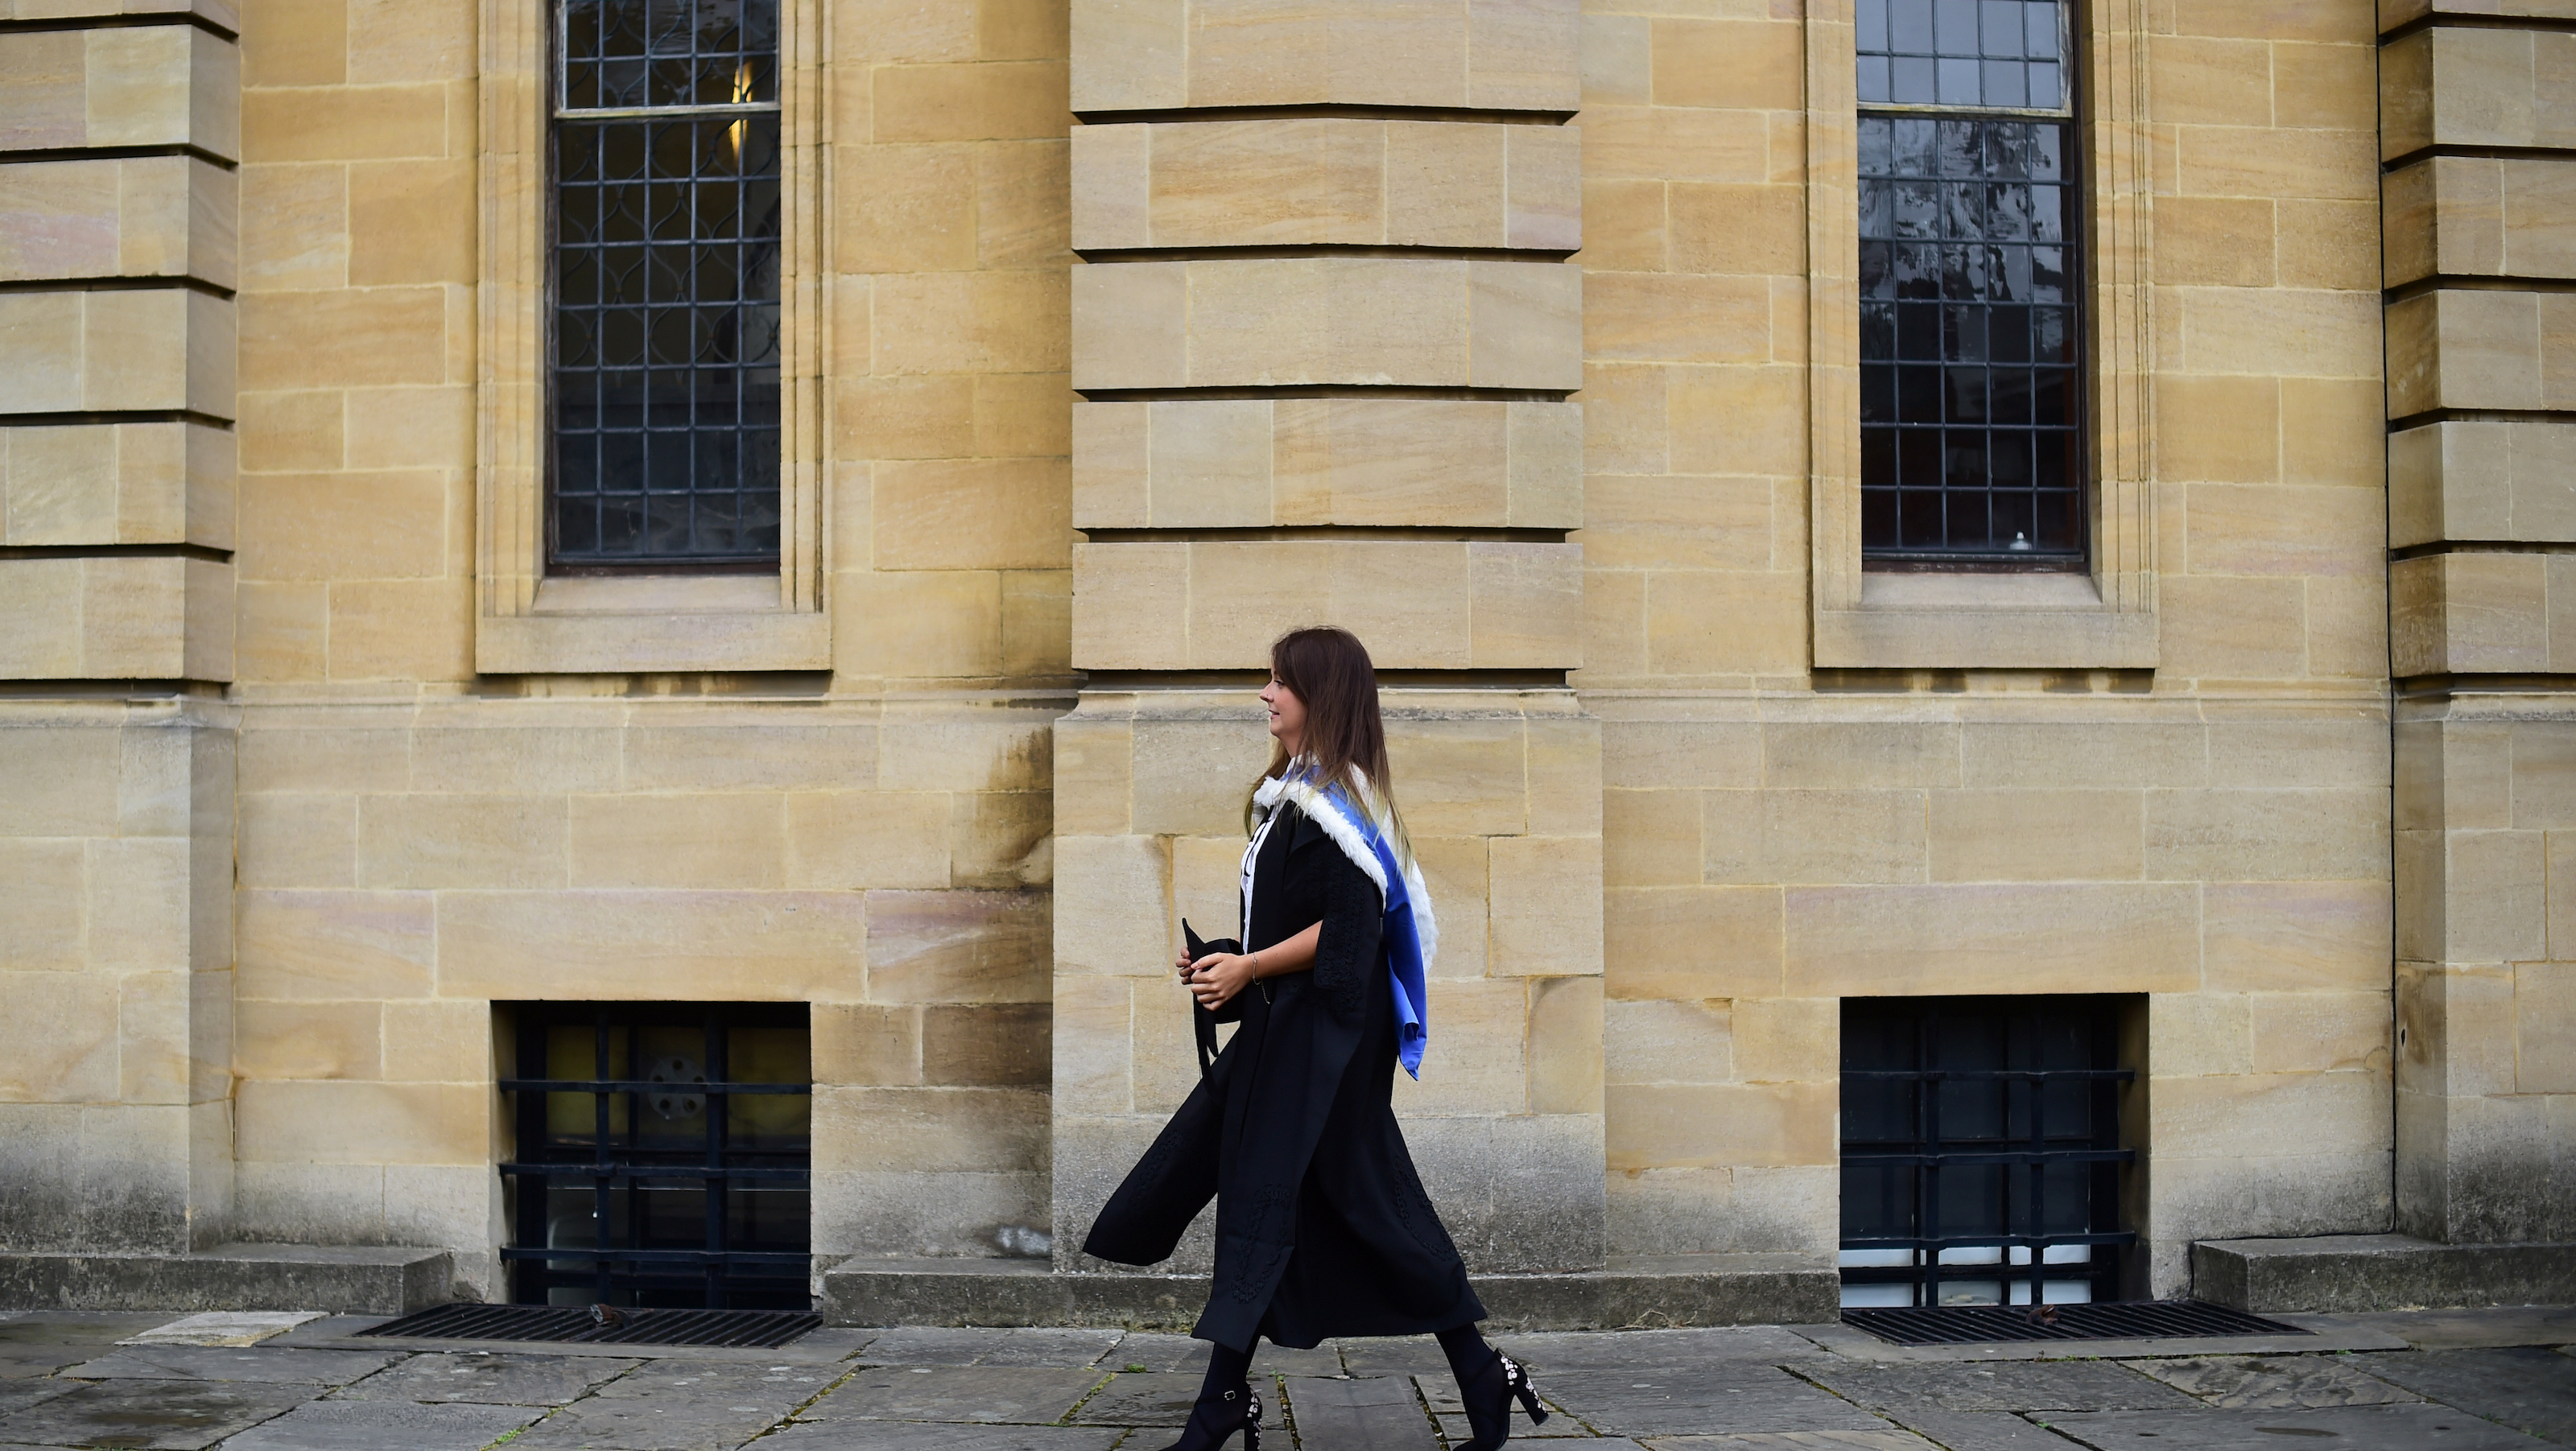 A graduate walks away after a graduation ceremony at Oxford University, in Oxford, Britain July 15, 2017. REUTERS/Hannah McKay - RC1E5D14AC00